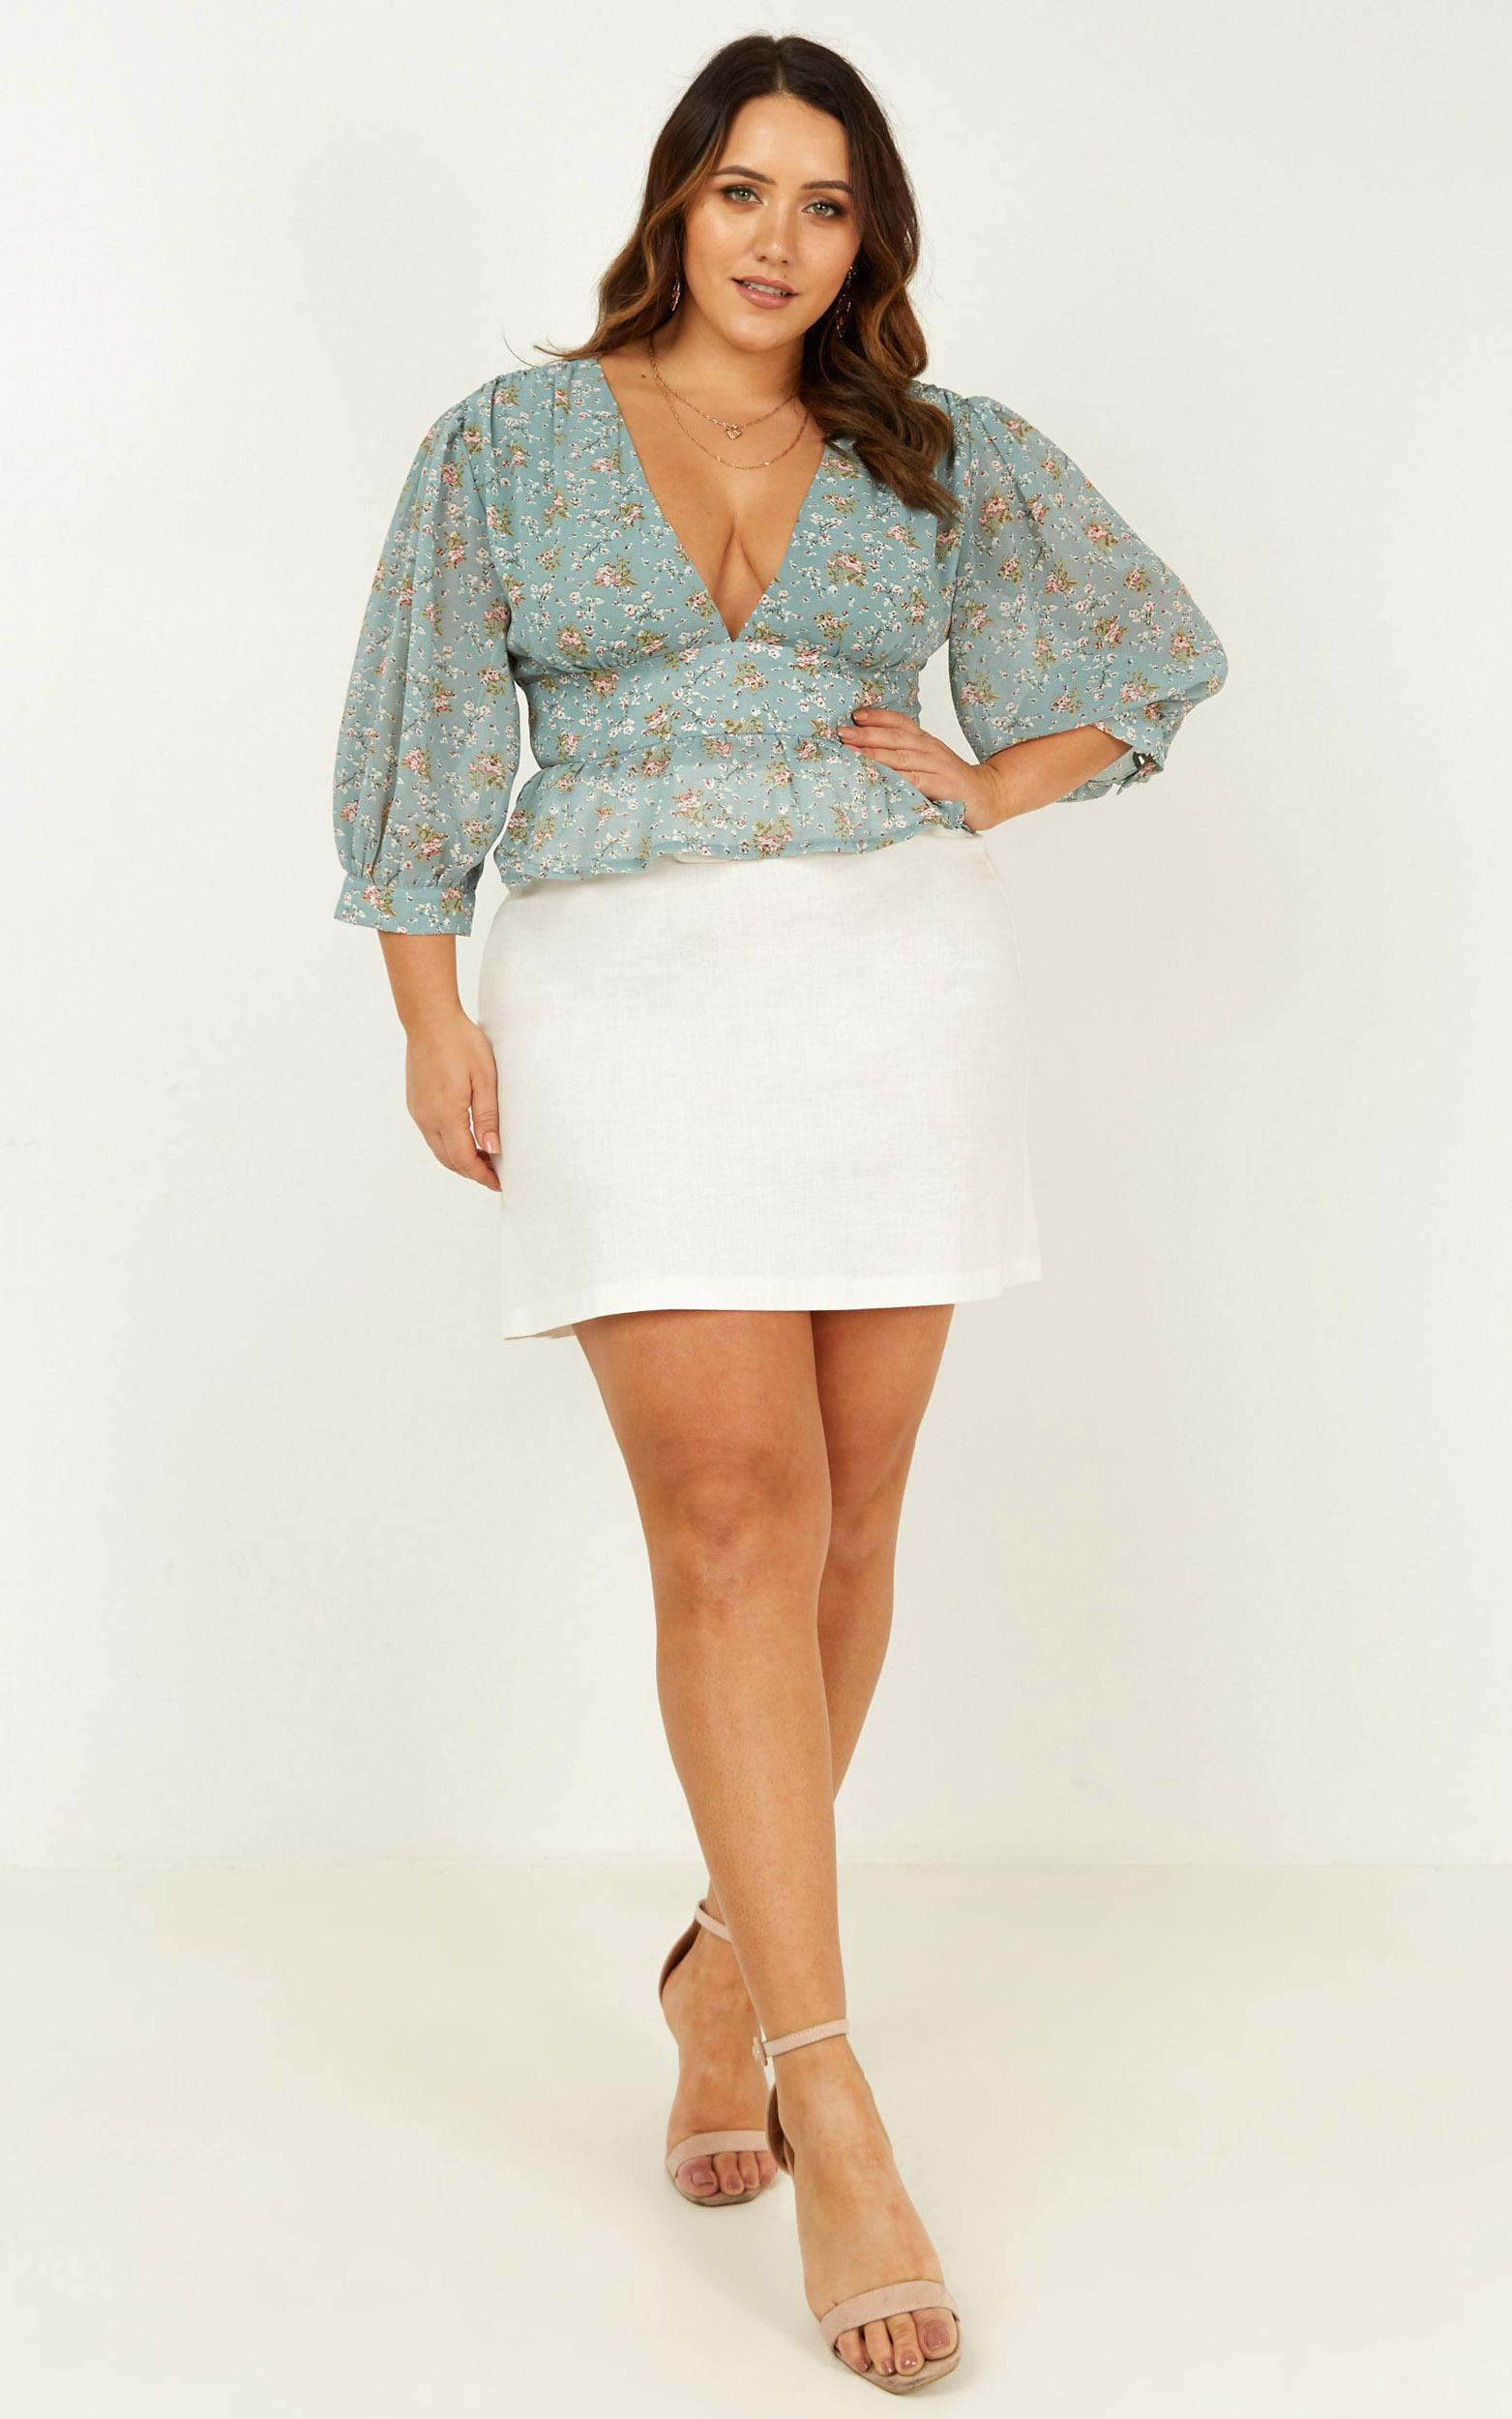 Never As Easy Top In teal floral - 12 (L), Green, hi-res image number null